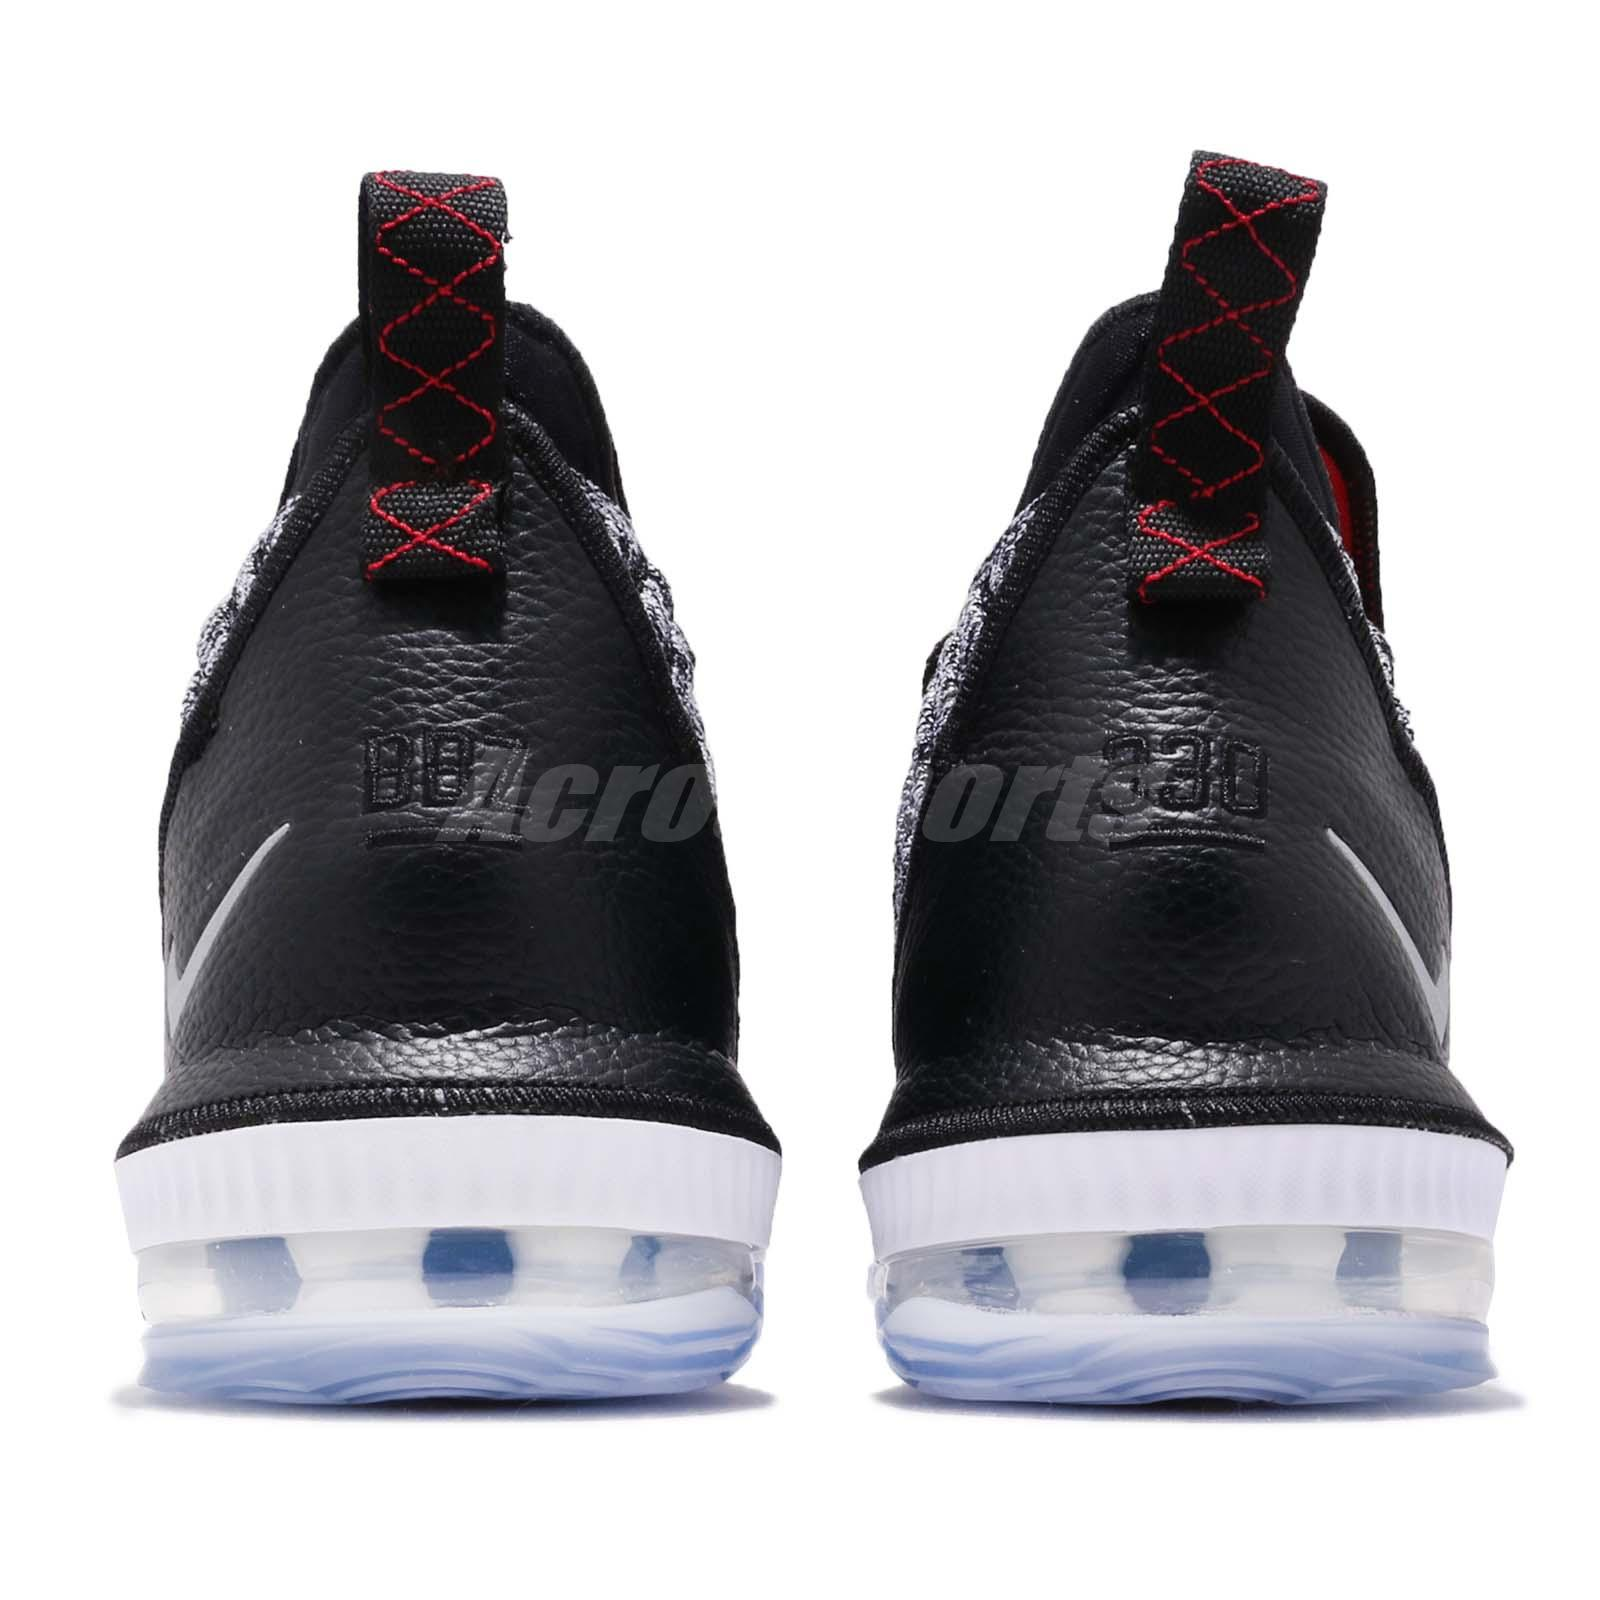 dc0a24a51c0 Nike LeBron XVI EP 16 James Dunkman Black White Mens Basketball ...